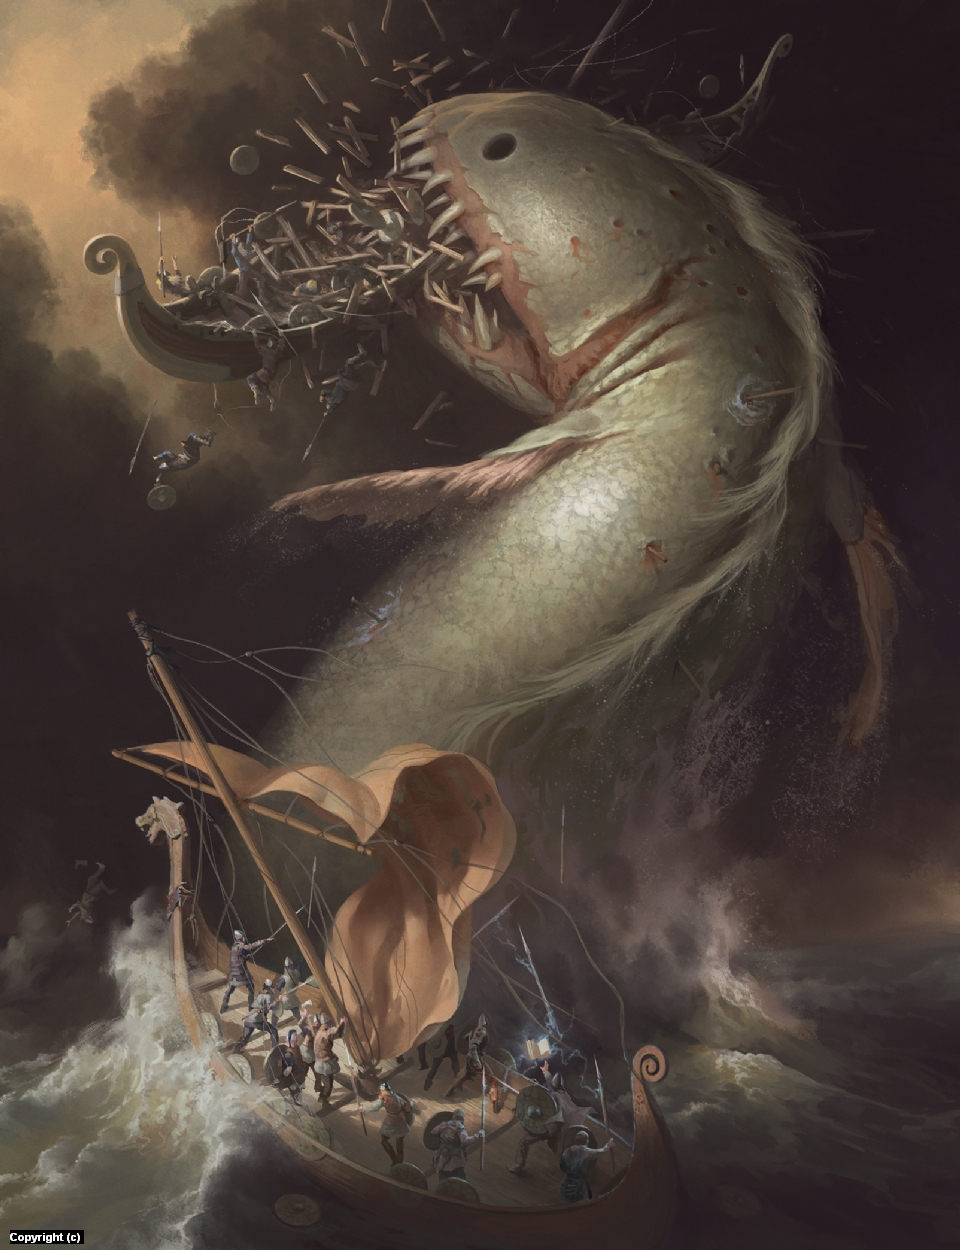 Leviathan Artwork by Quentin Castel